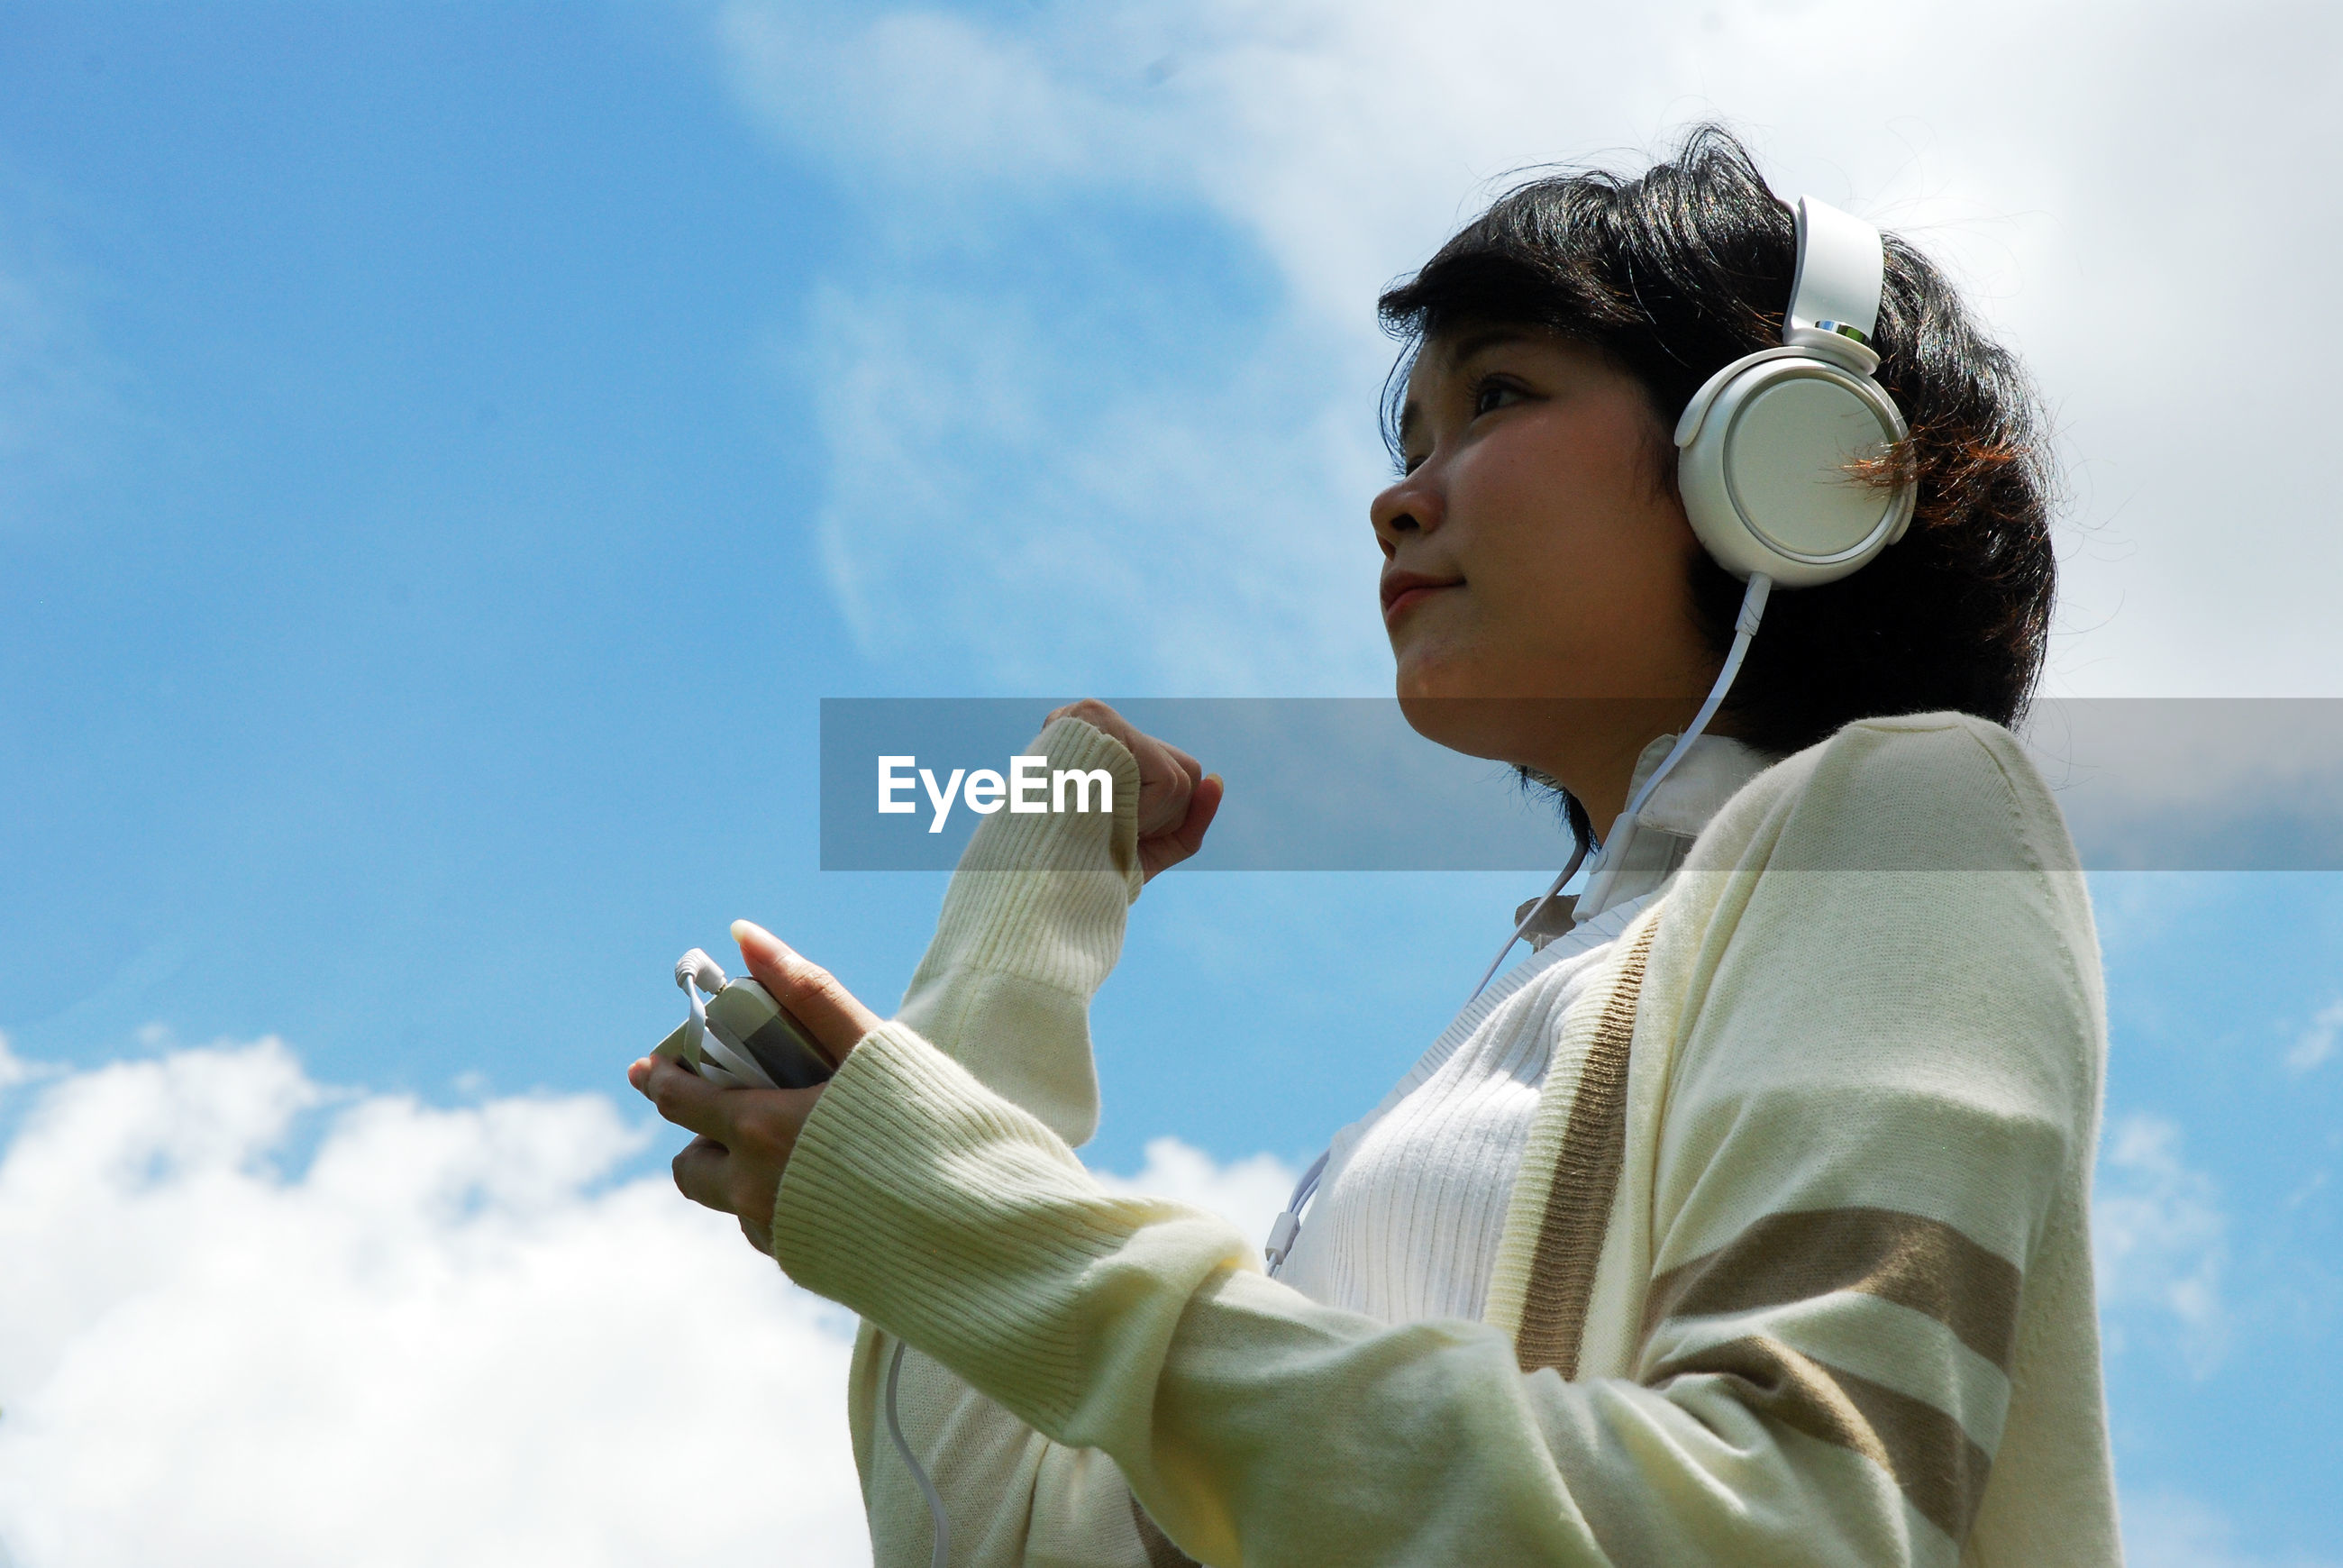 Low angle view of woman listening to music against sky